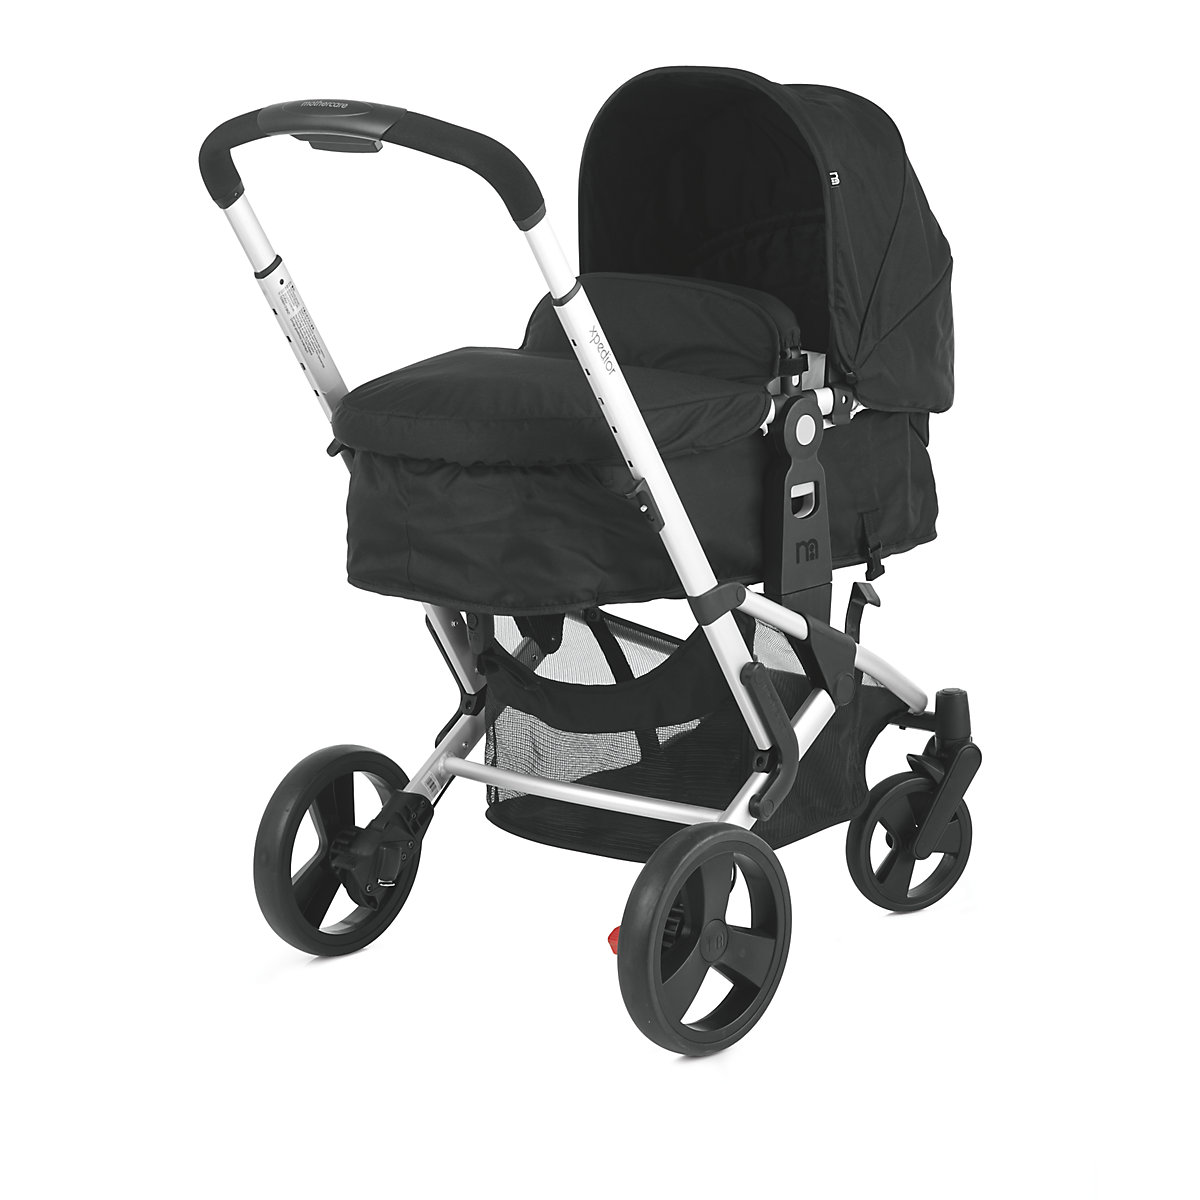 Where To Buy Baby Travel System